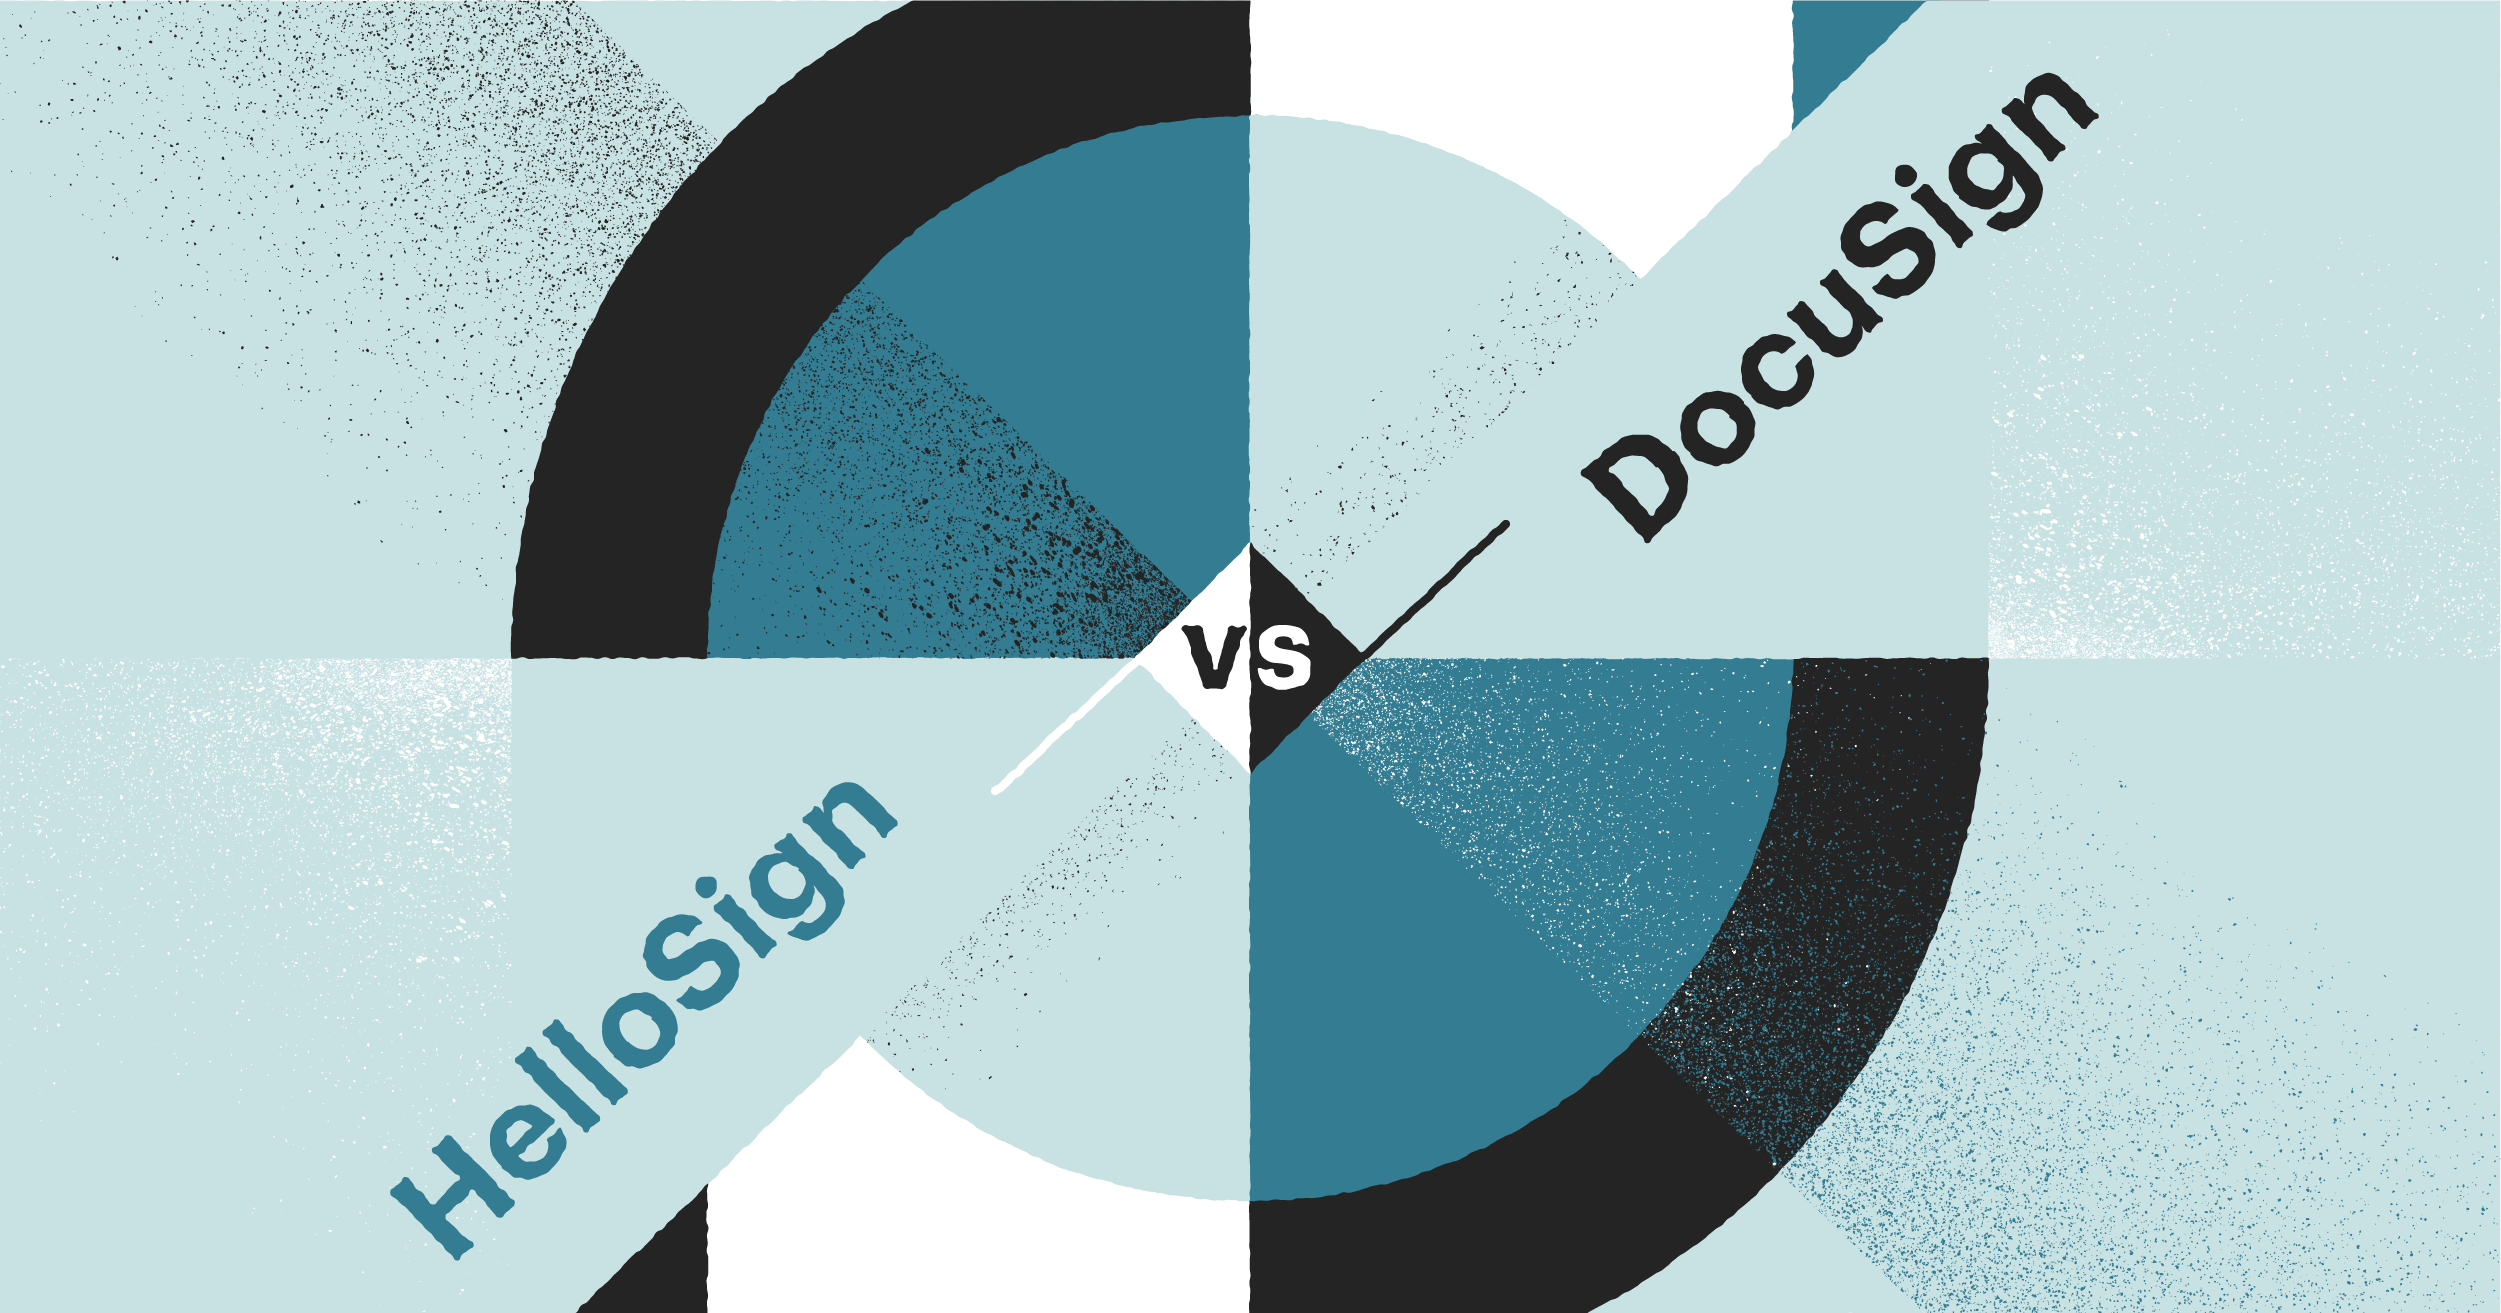 HelloSign vs DocuSign: What are the differences?